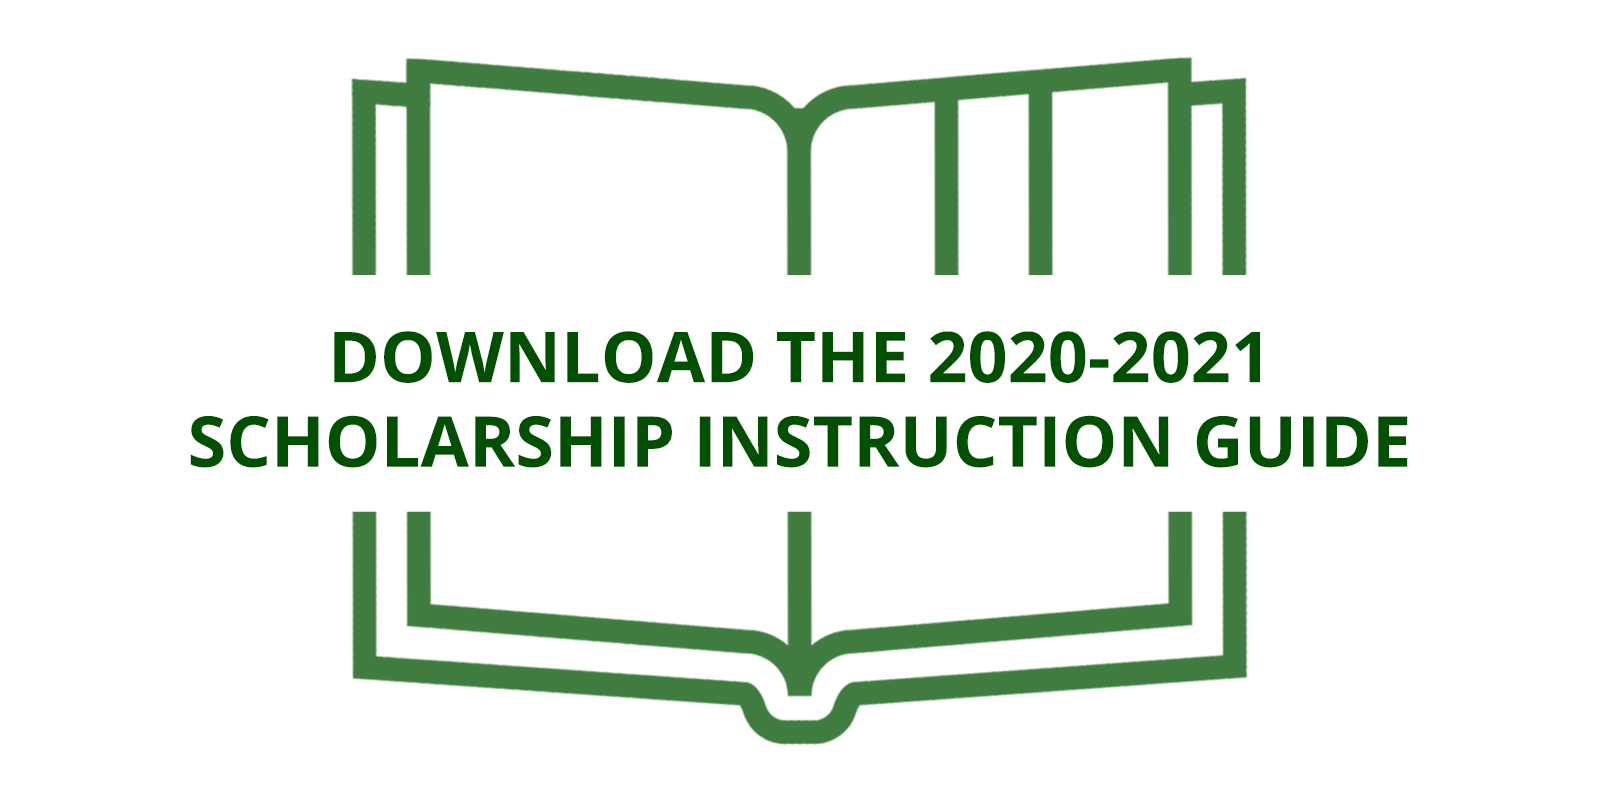 open book icon to download the 2020-2021 scholarship instruction guide